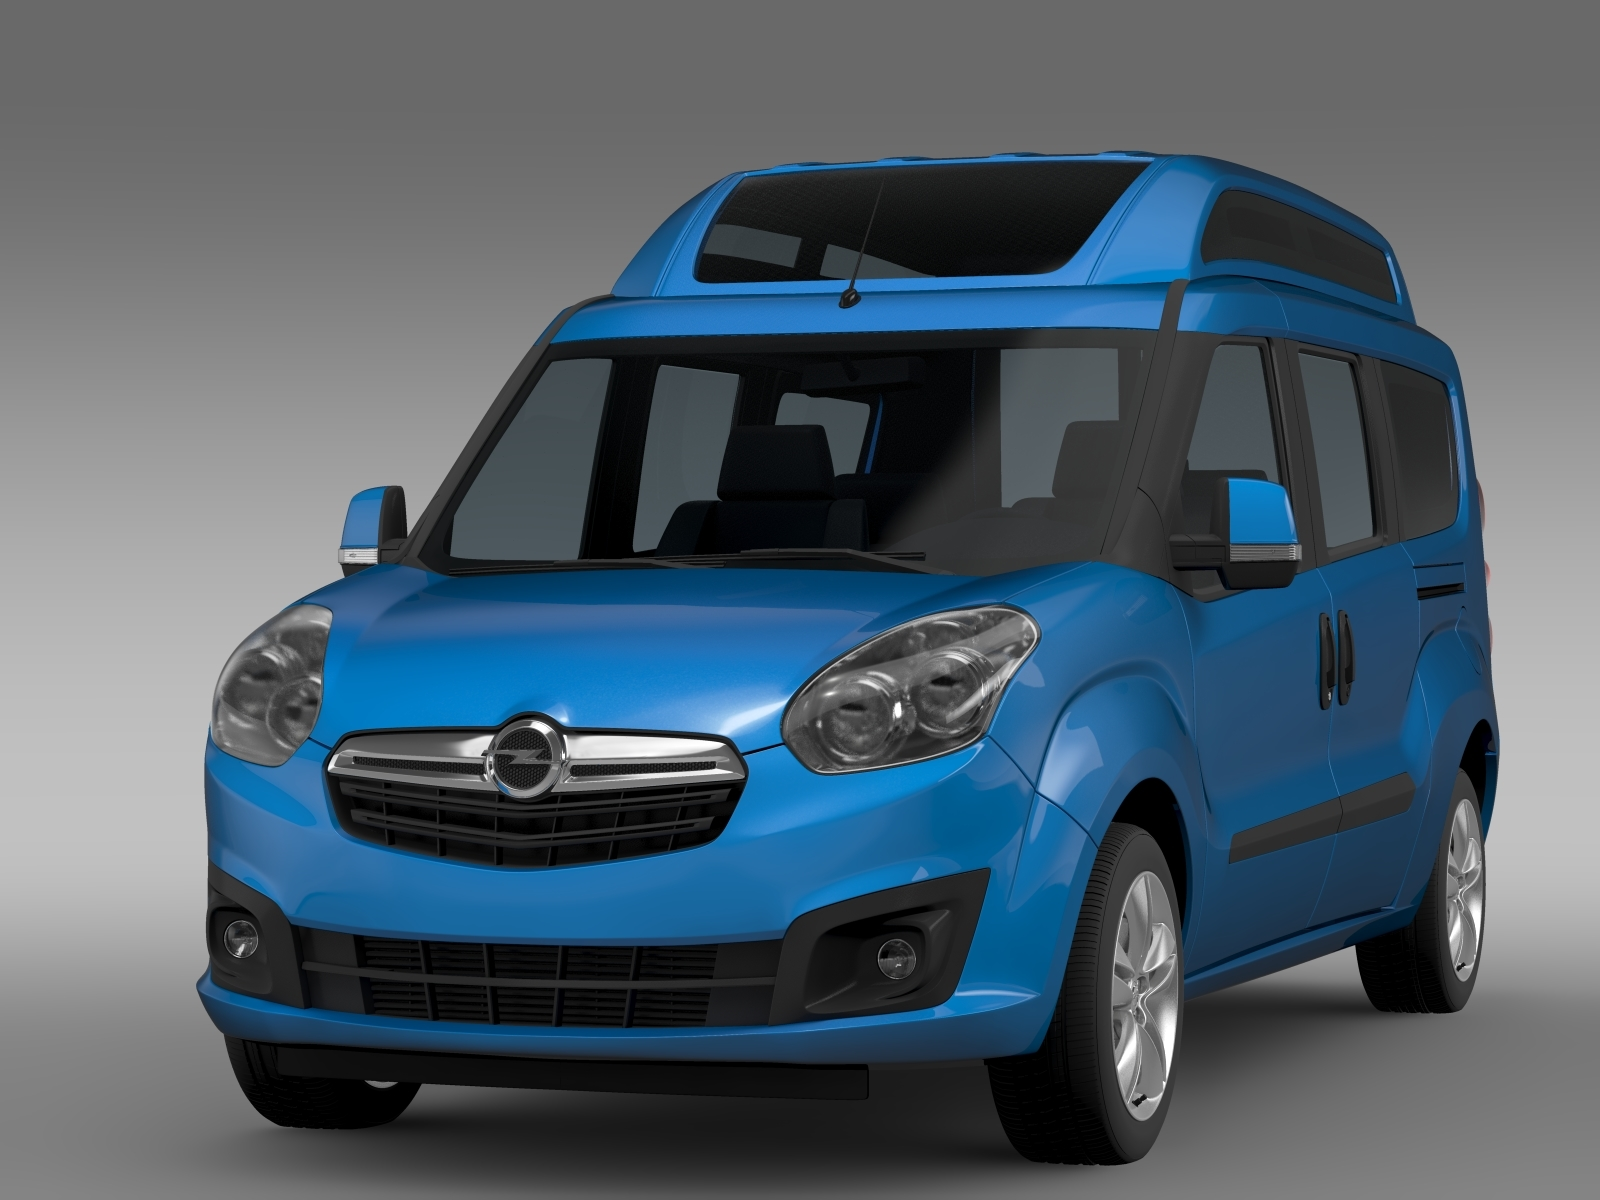 opel combo tour high roof lwb d 2015 by creator 3d 3docean. Black Bedroom Furniture Sets. Home Design Ideas